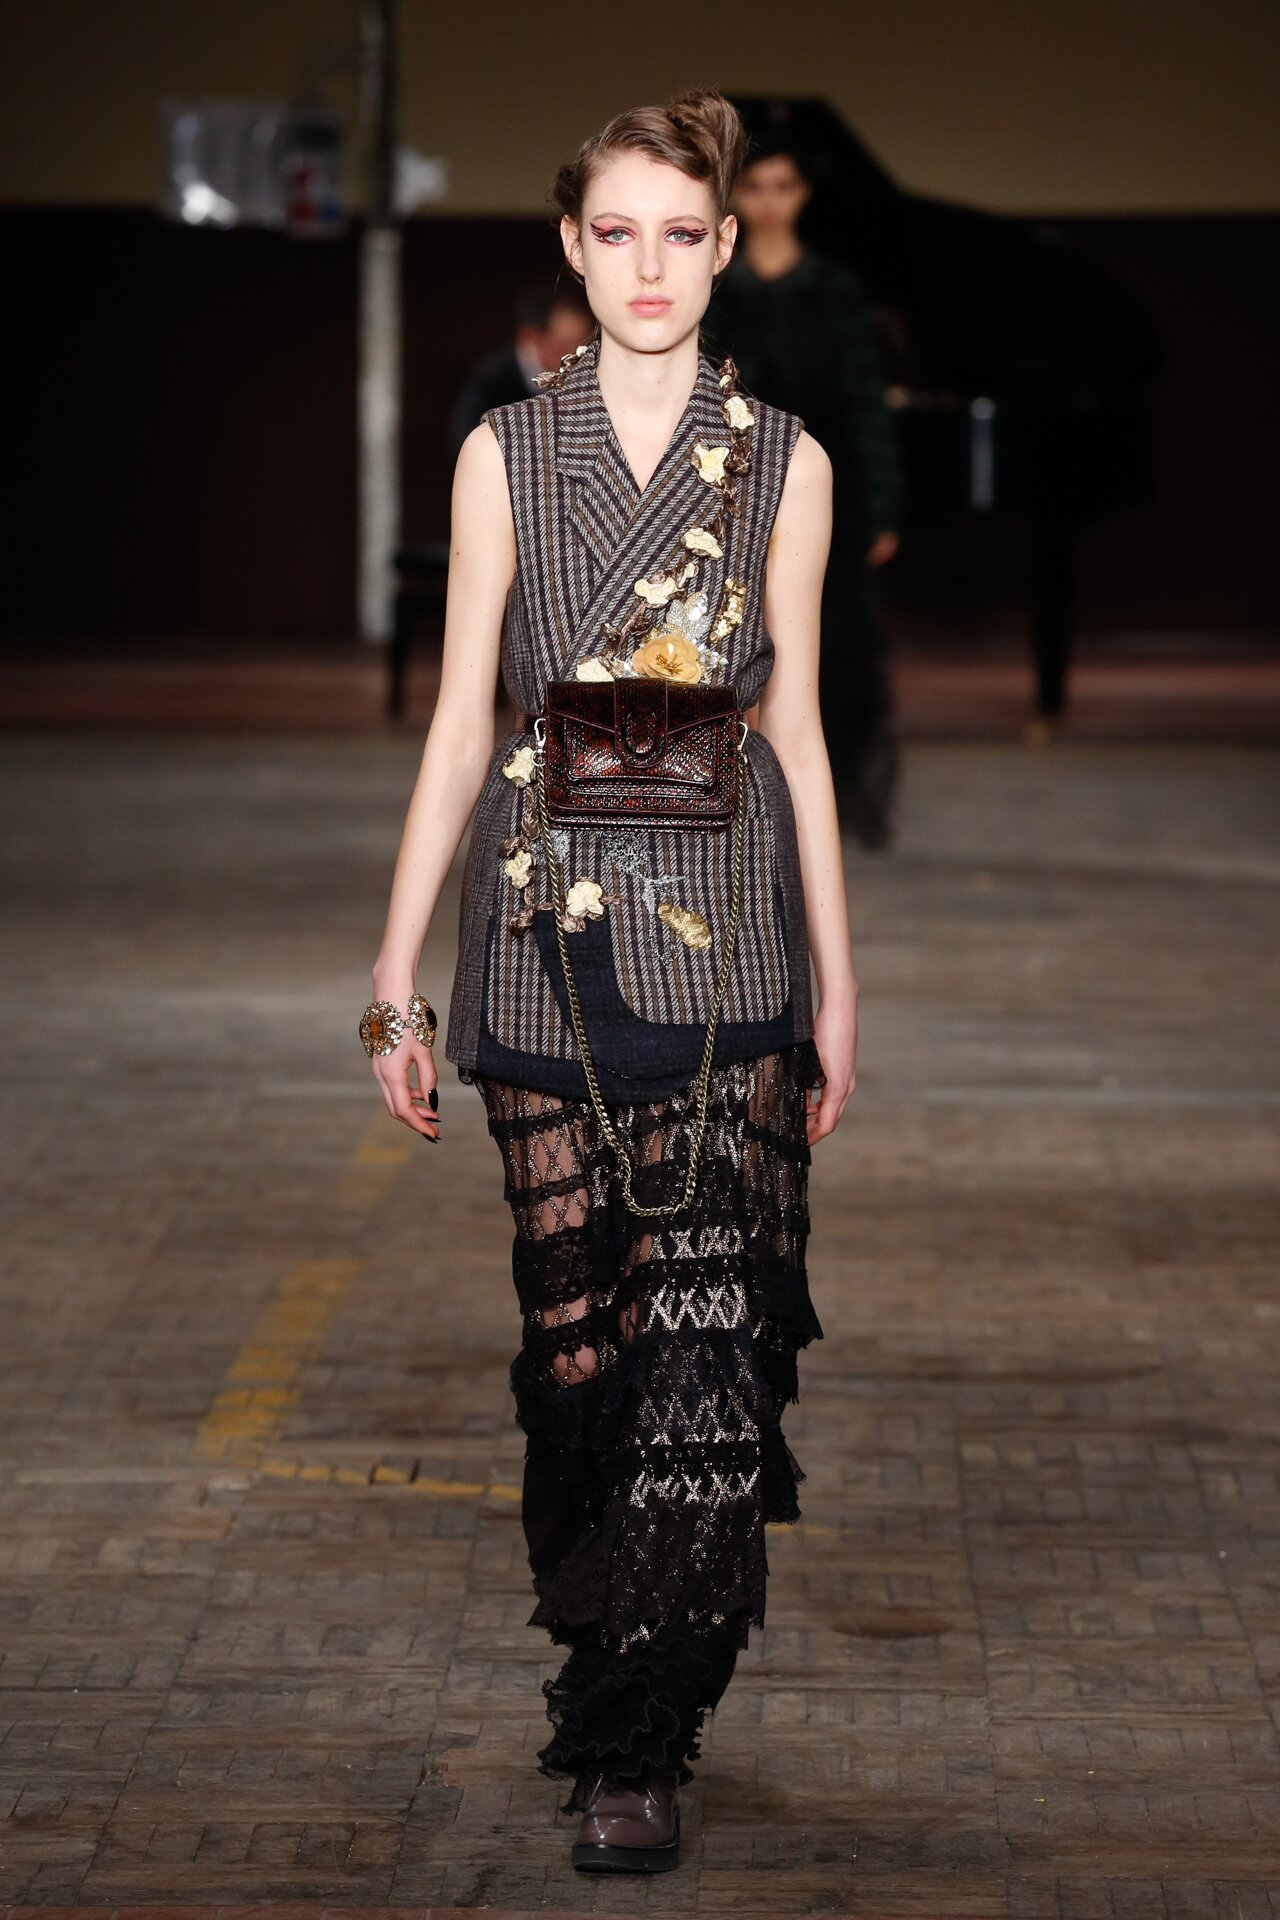 Antonio Marras Fall Winter 2018-19 Fashion Show Look 45